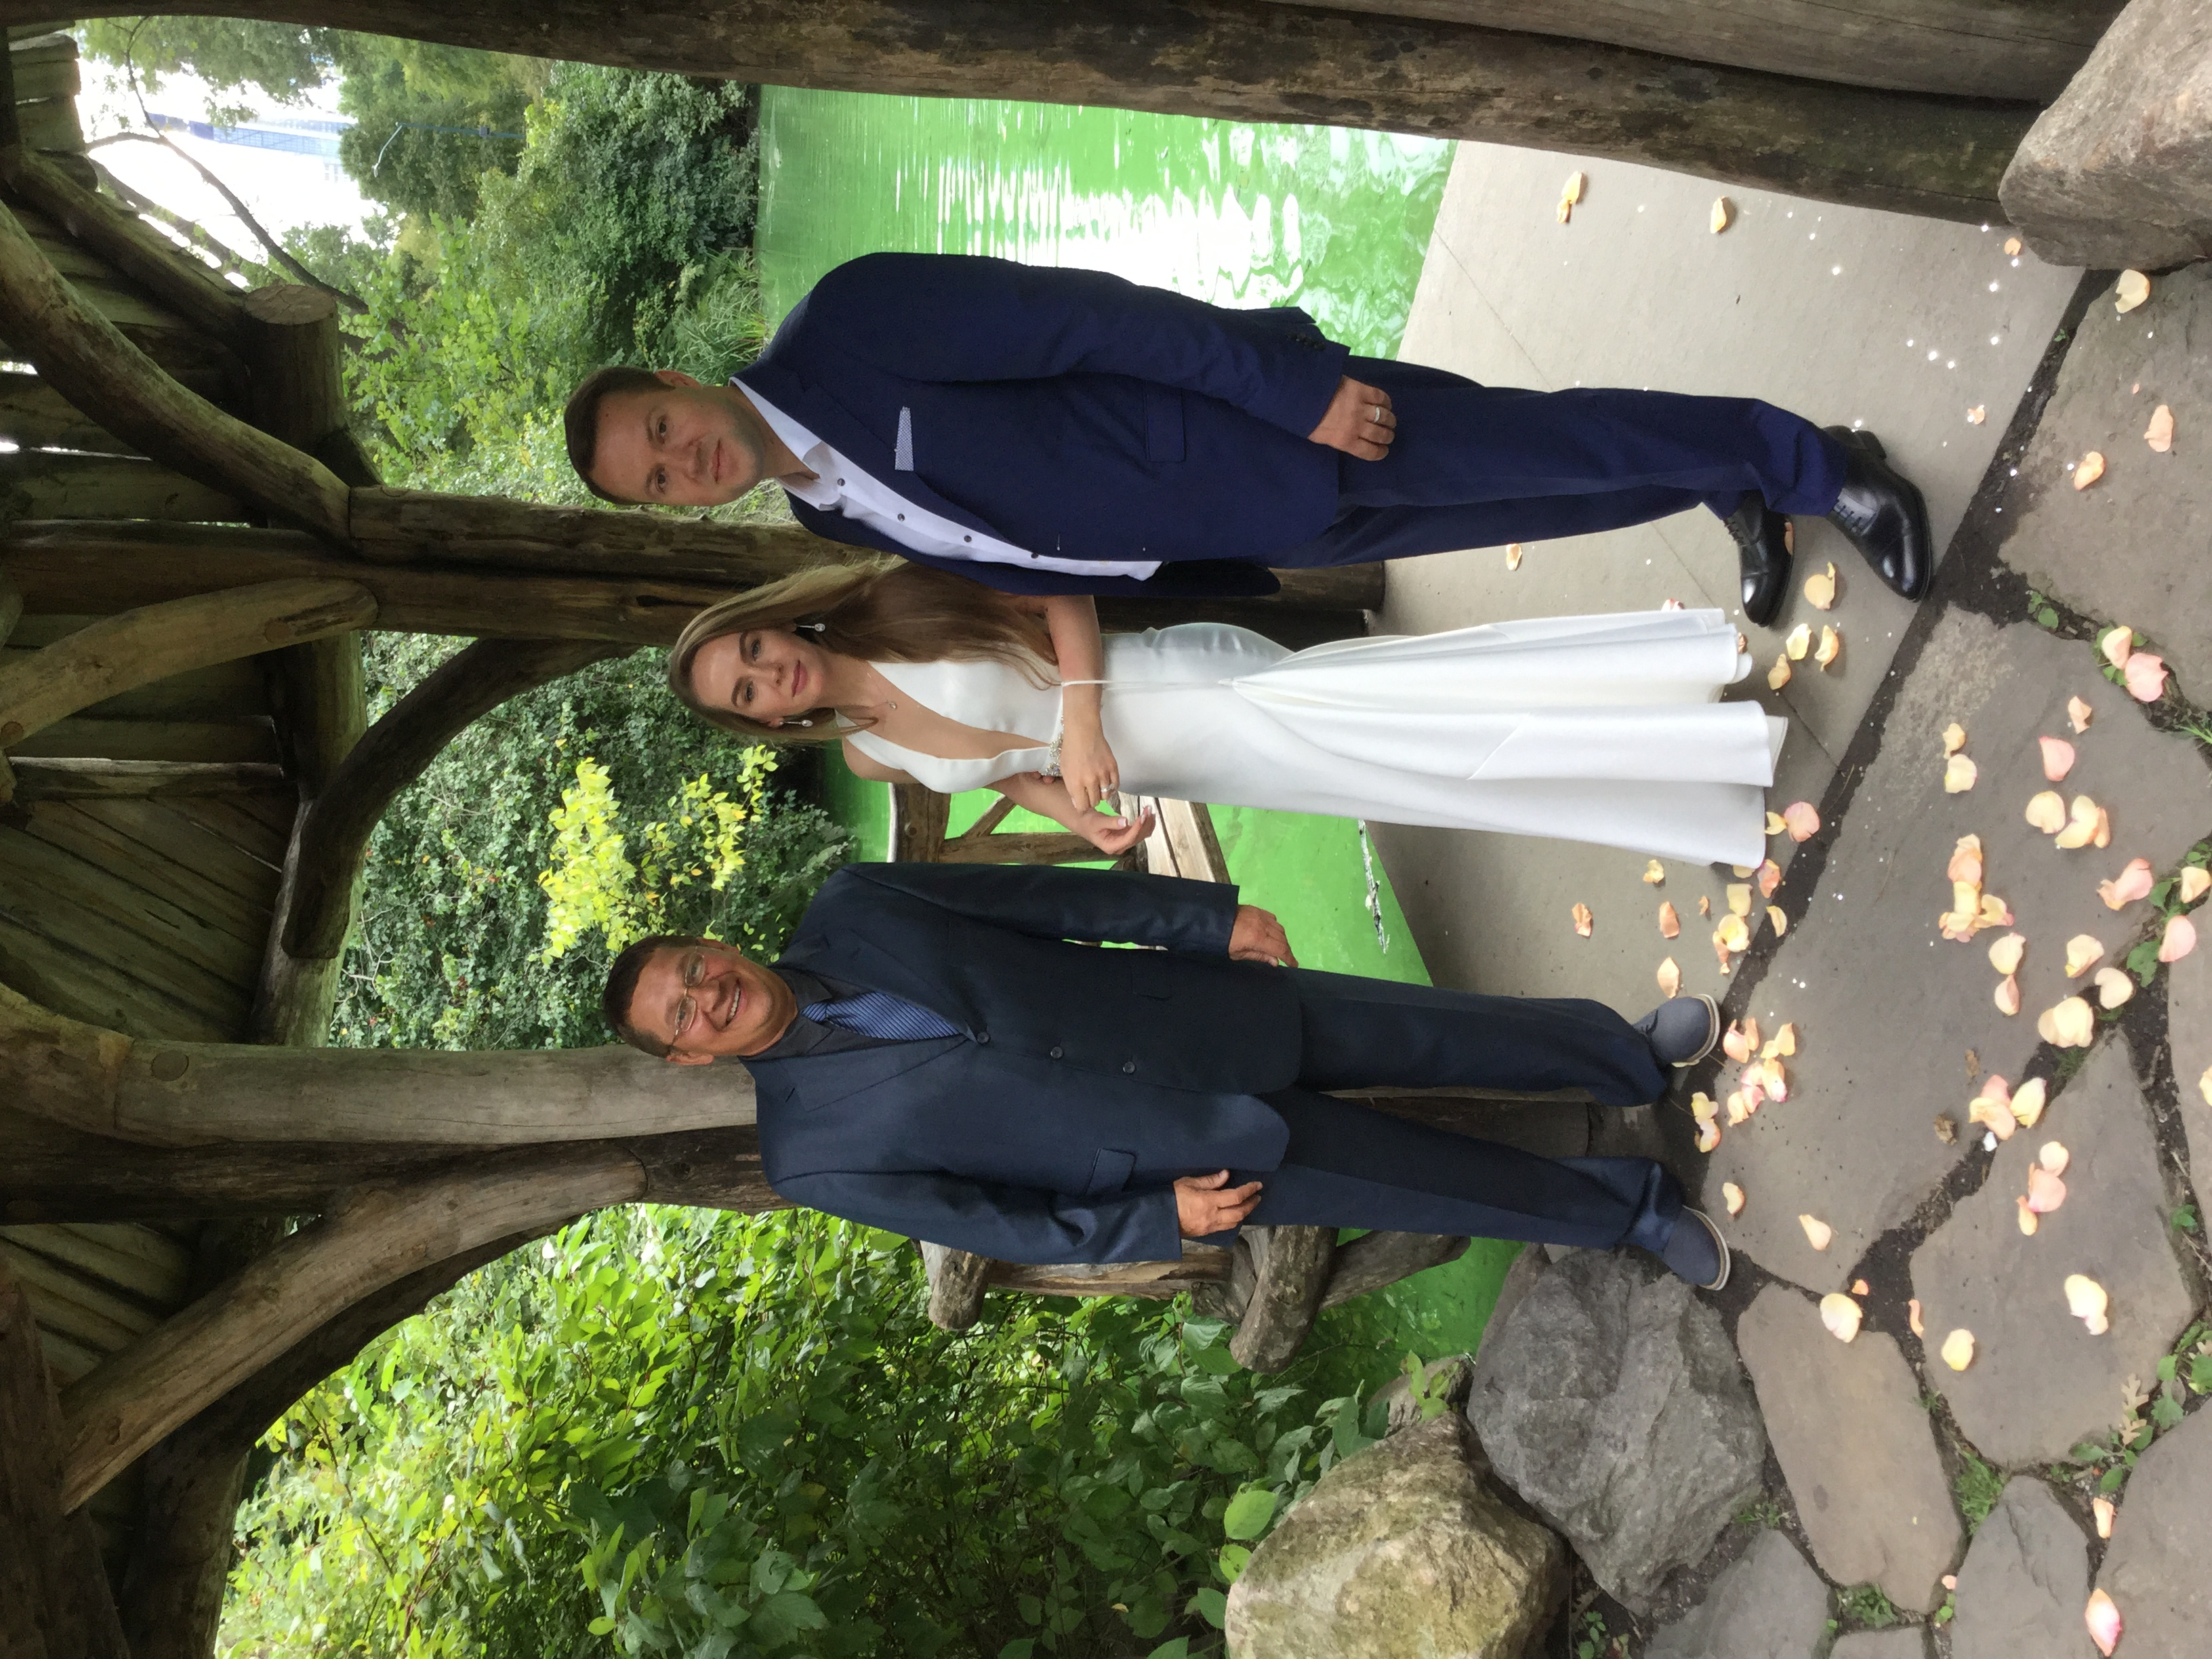 09-07-2019, Saturday, September 7th, 2019, Russian Wedding Minister Mikhail, Wagner Cove, Central Park West, New York City